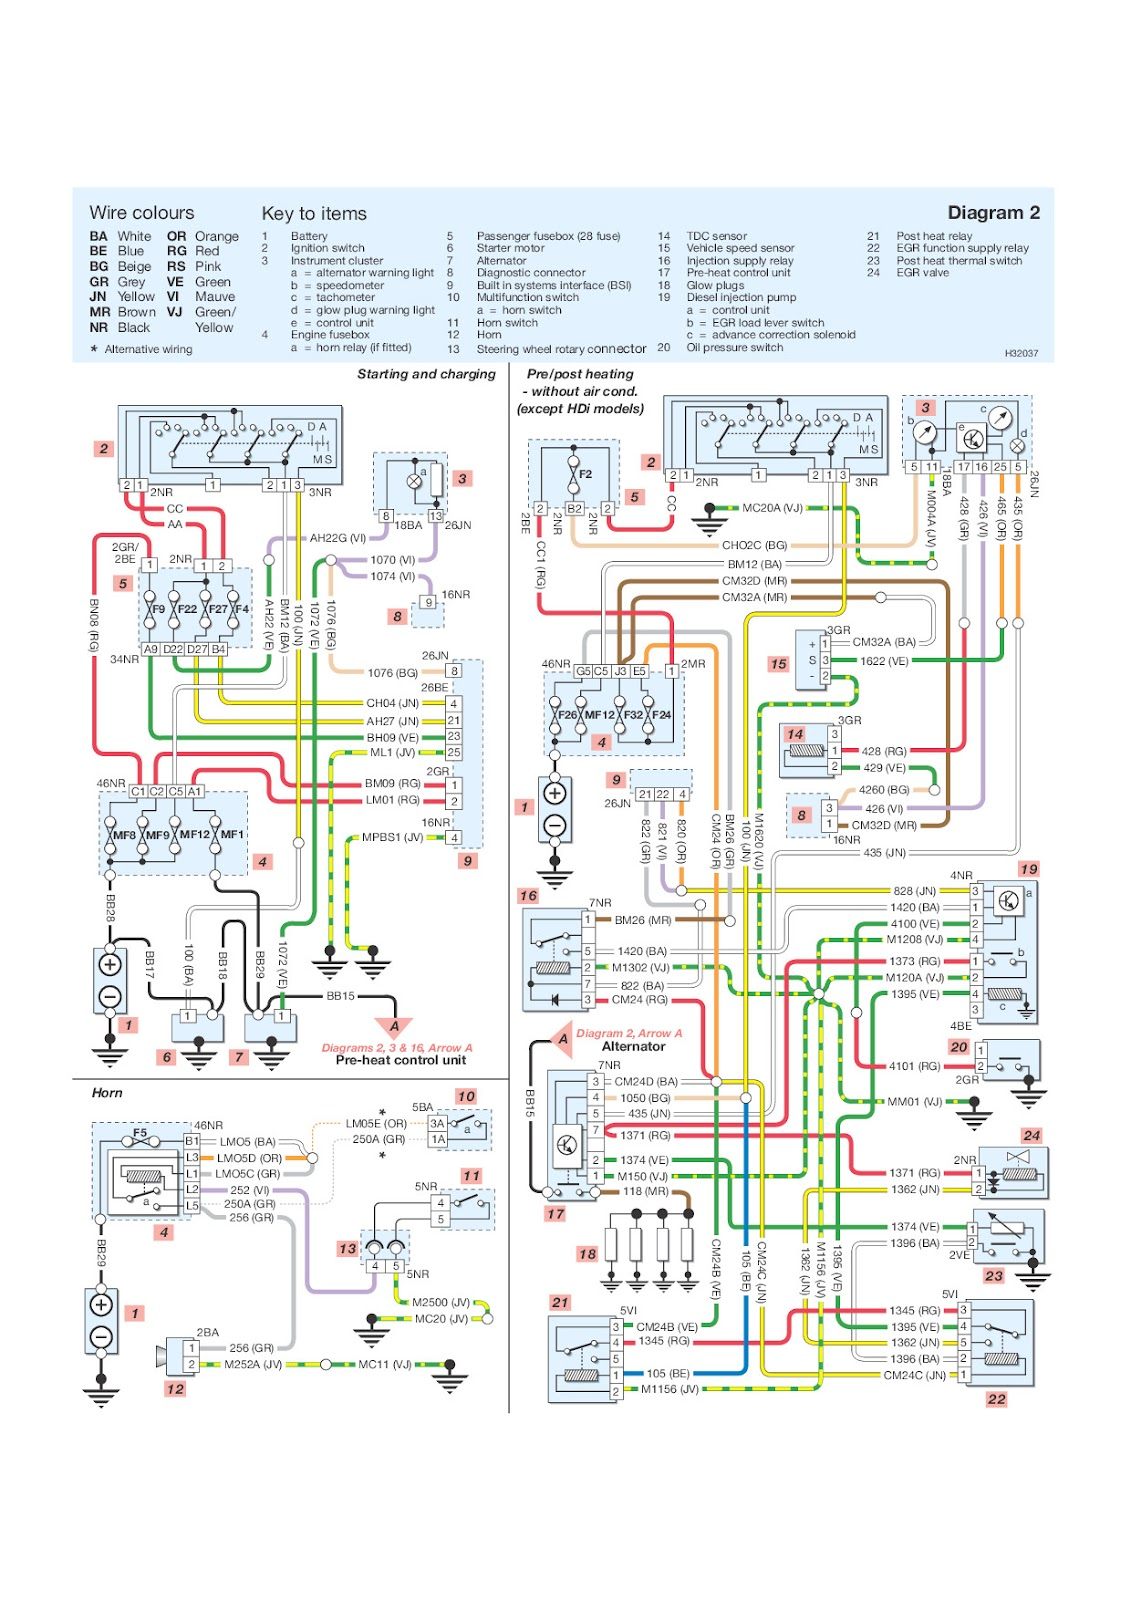 peugeot 206 climate control wiring diagram your wiring diagrams source: peugeot 206 starting ... #7